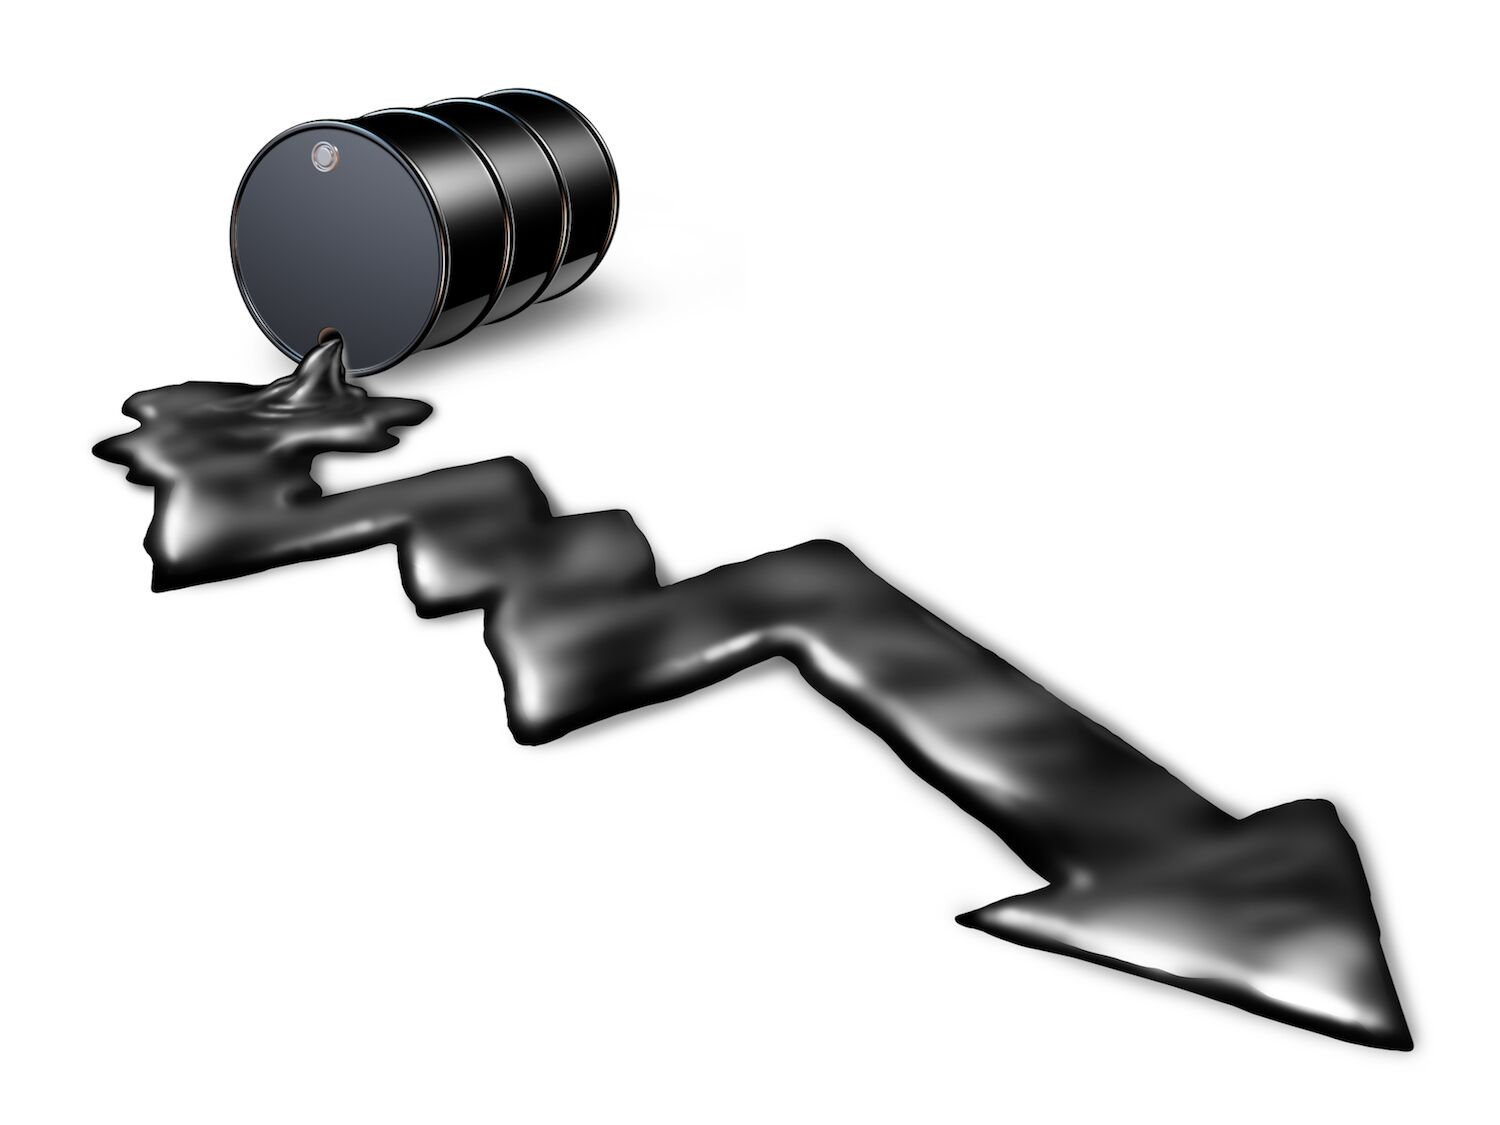 WTI crude oil price slides: where is support? + two potential oil equity plays